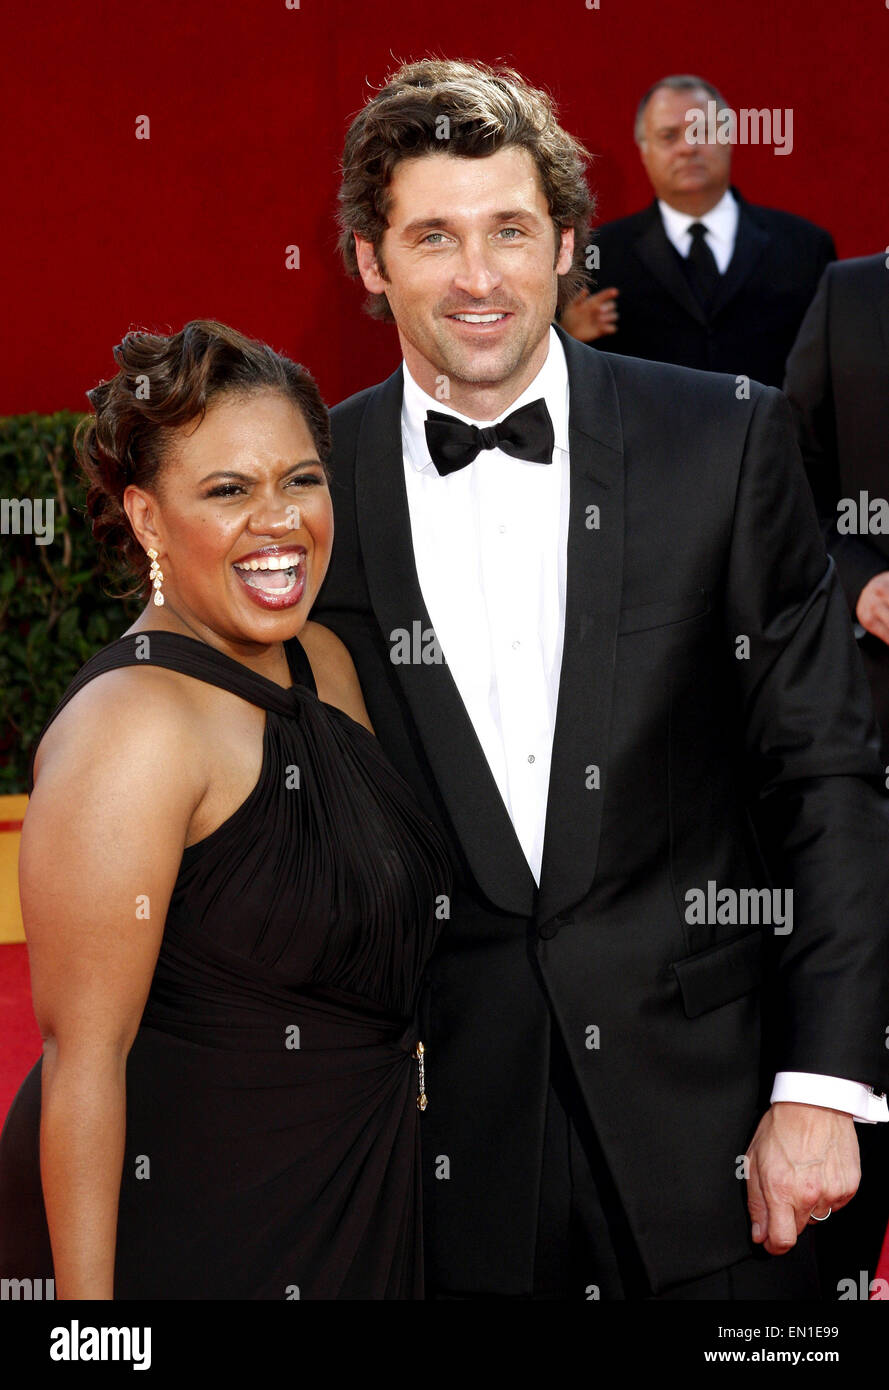 Chandra Wilson and Patrick Dempsey - Stock Image